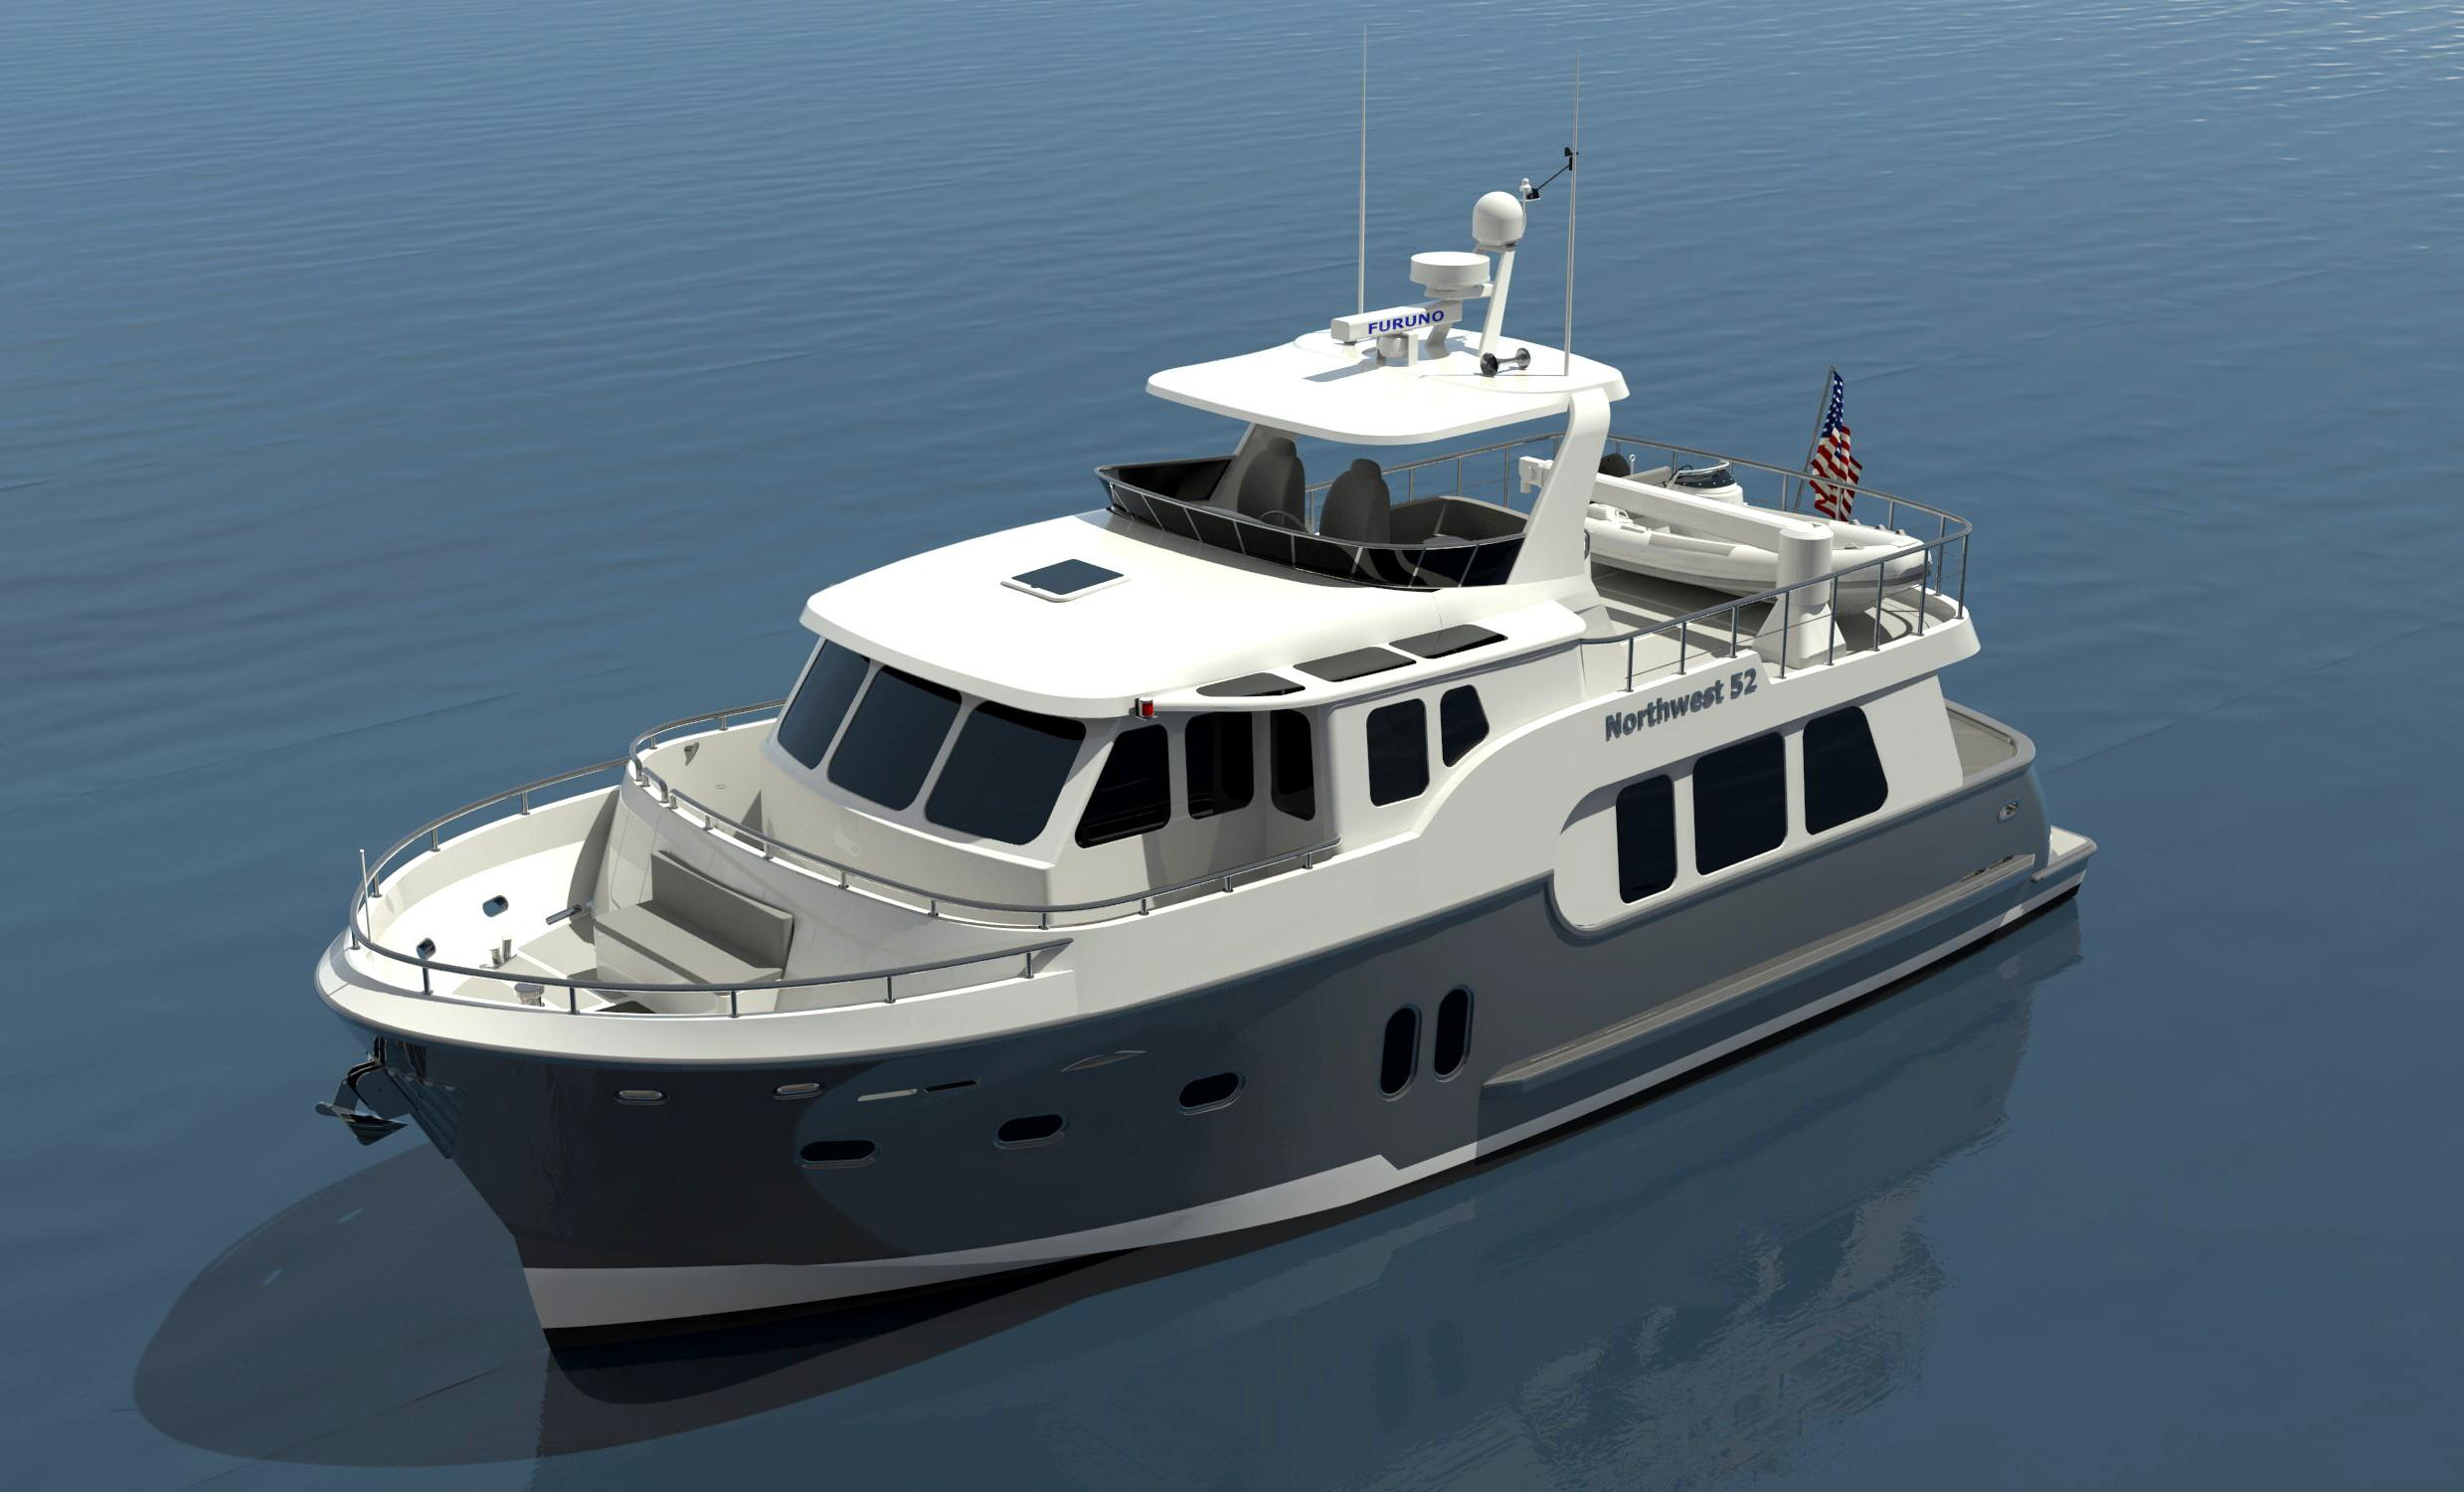 Picture Of:  52' Northwest 52 2020Yacht For Sale   5